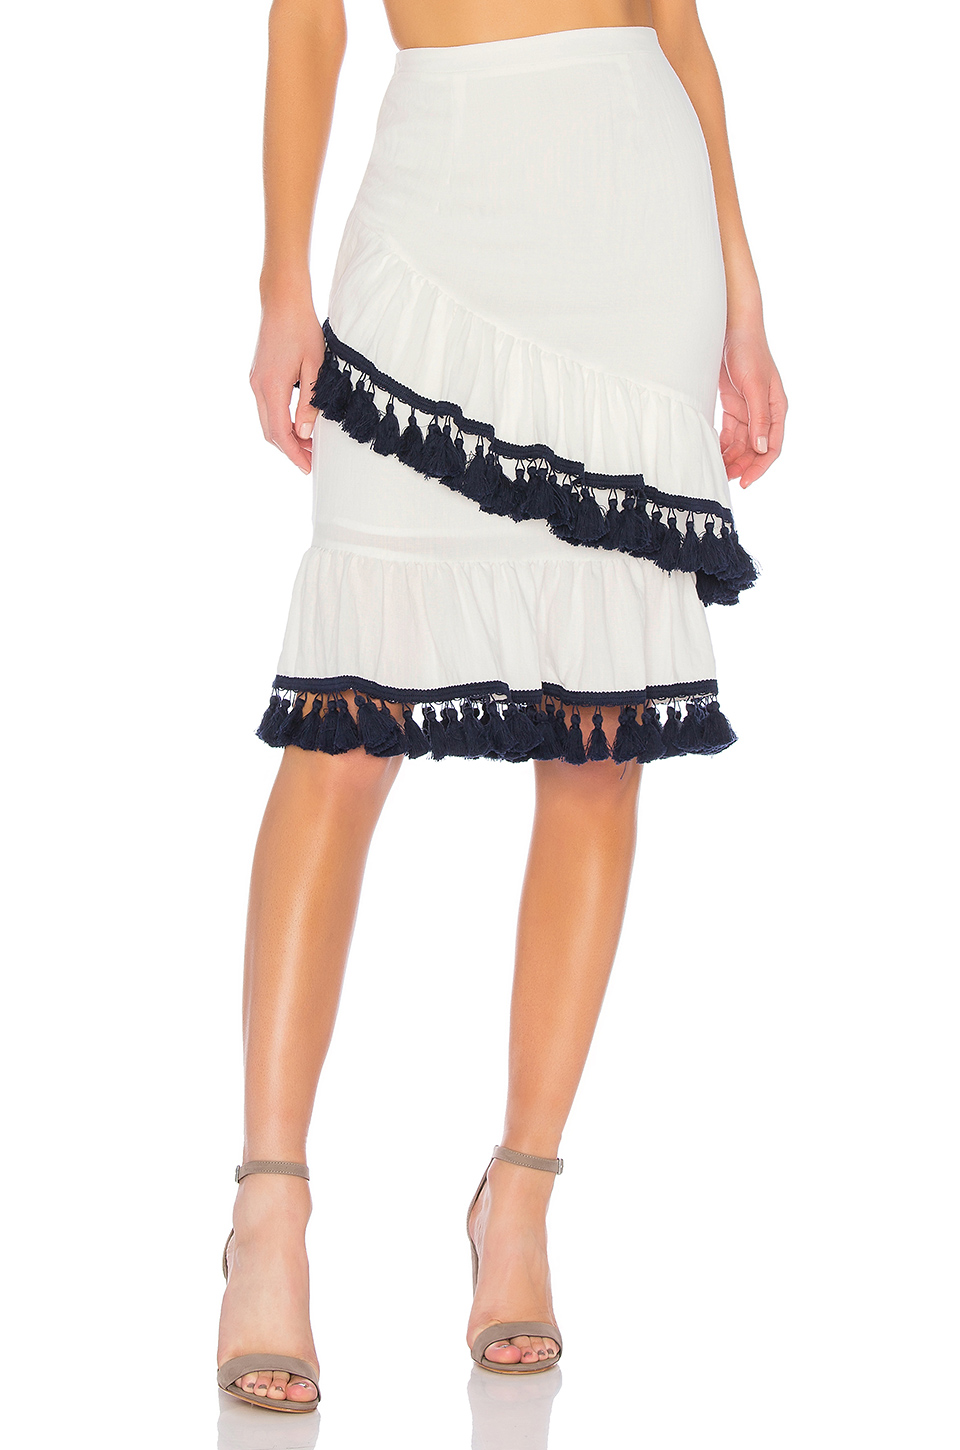 Suboo Frill Skirt in Playa